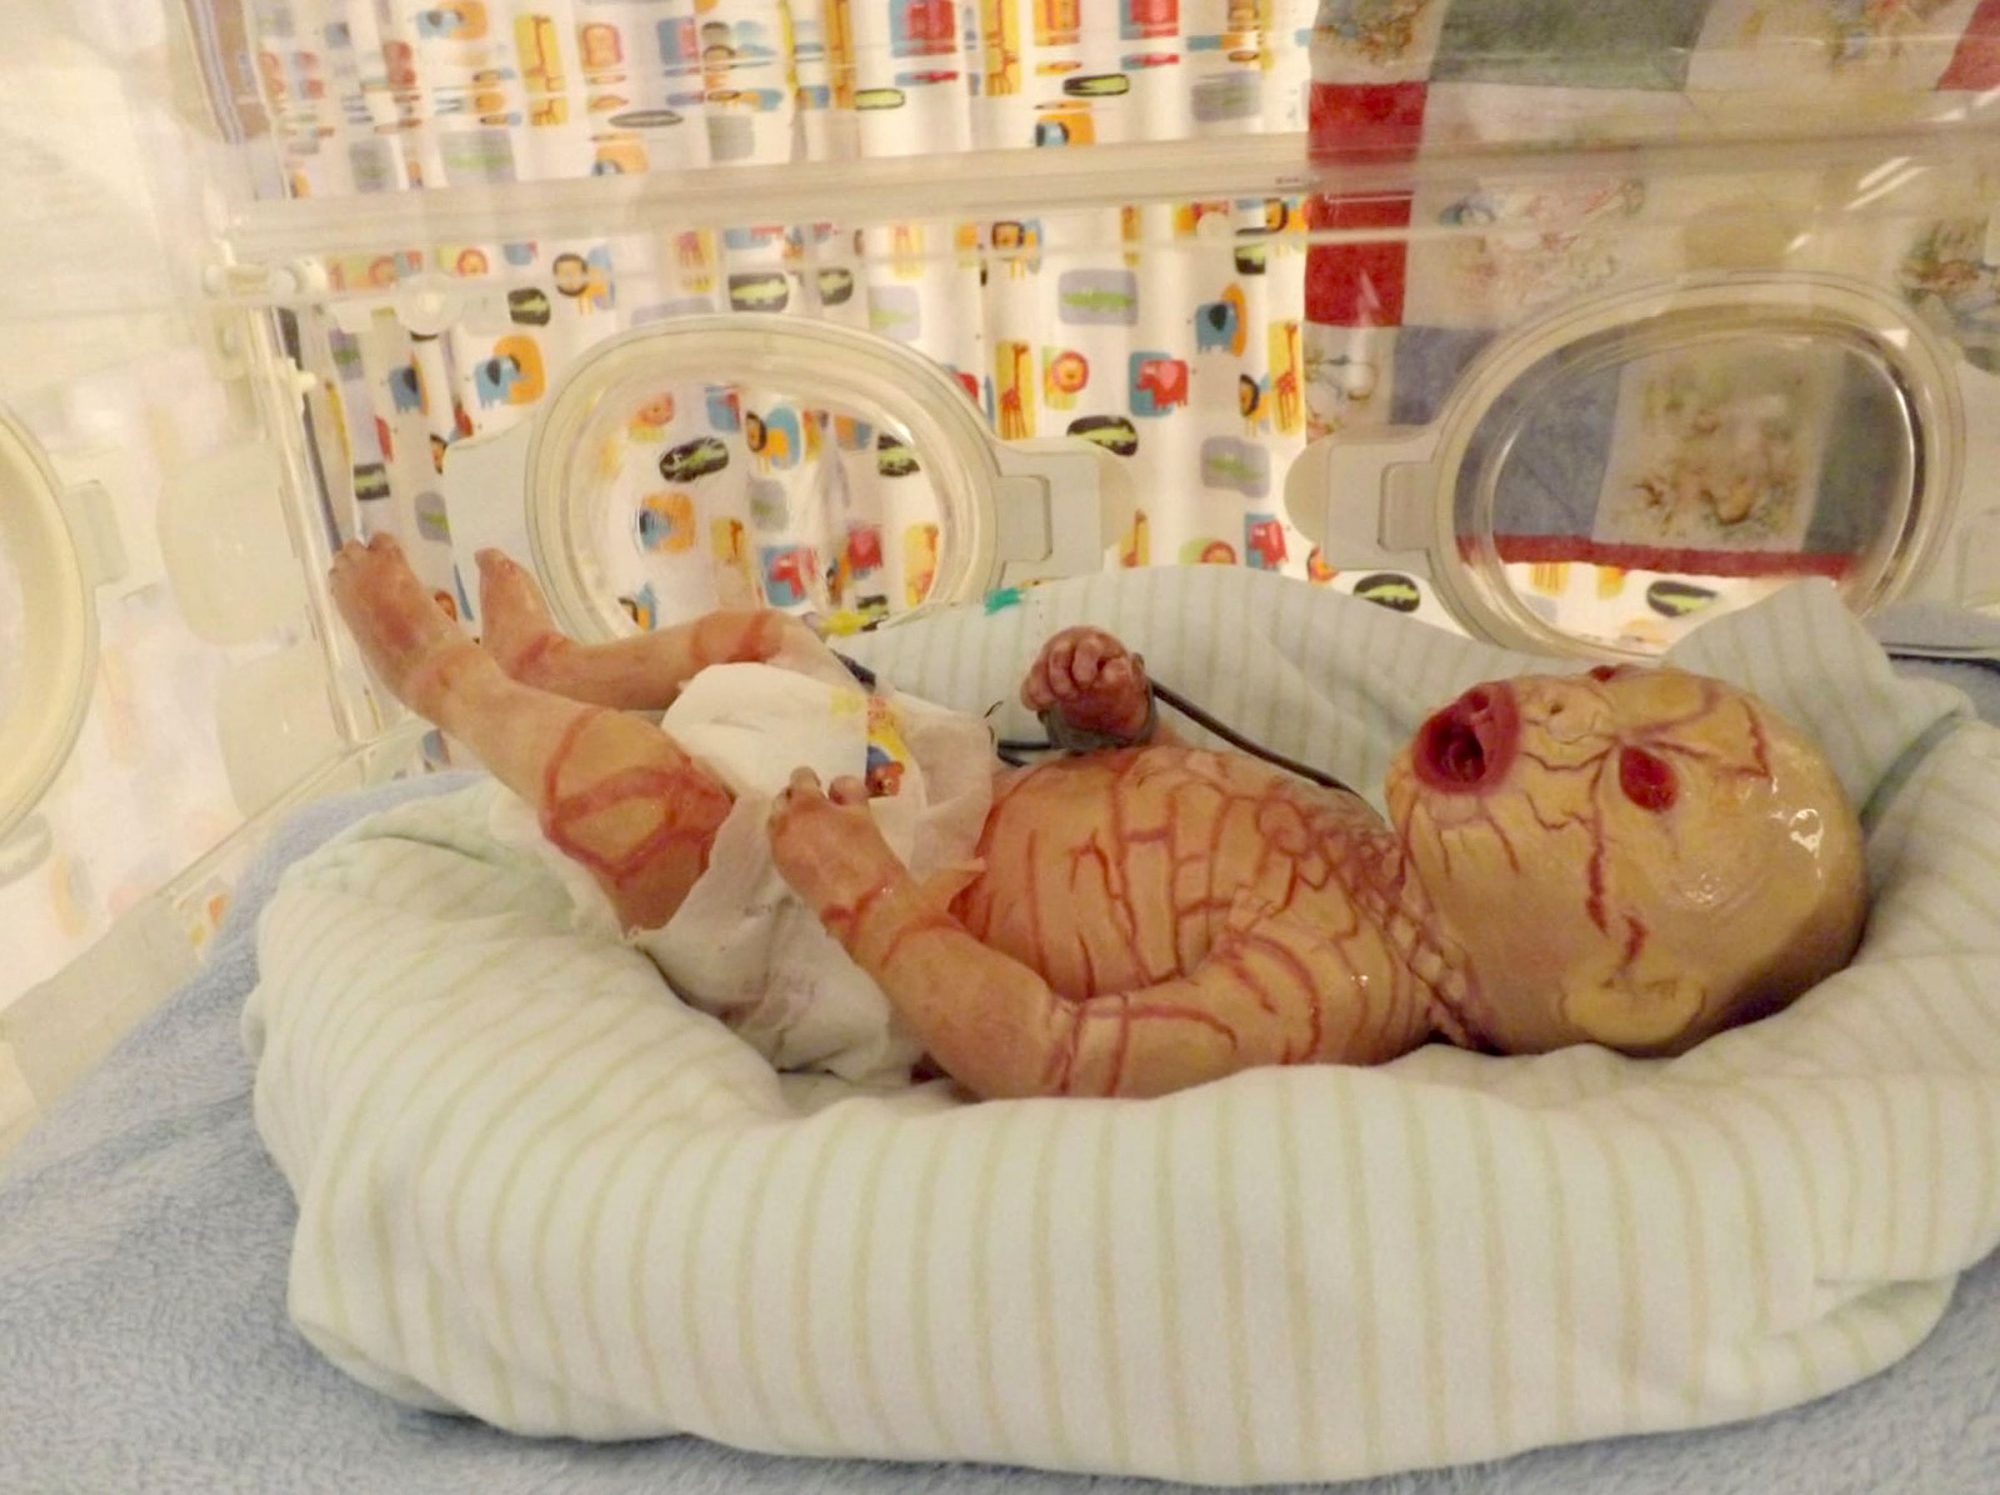 Michal Winter, baby with Harlequin ichthyosis